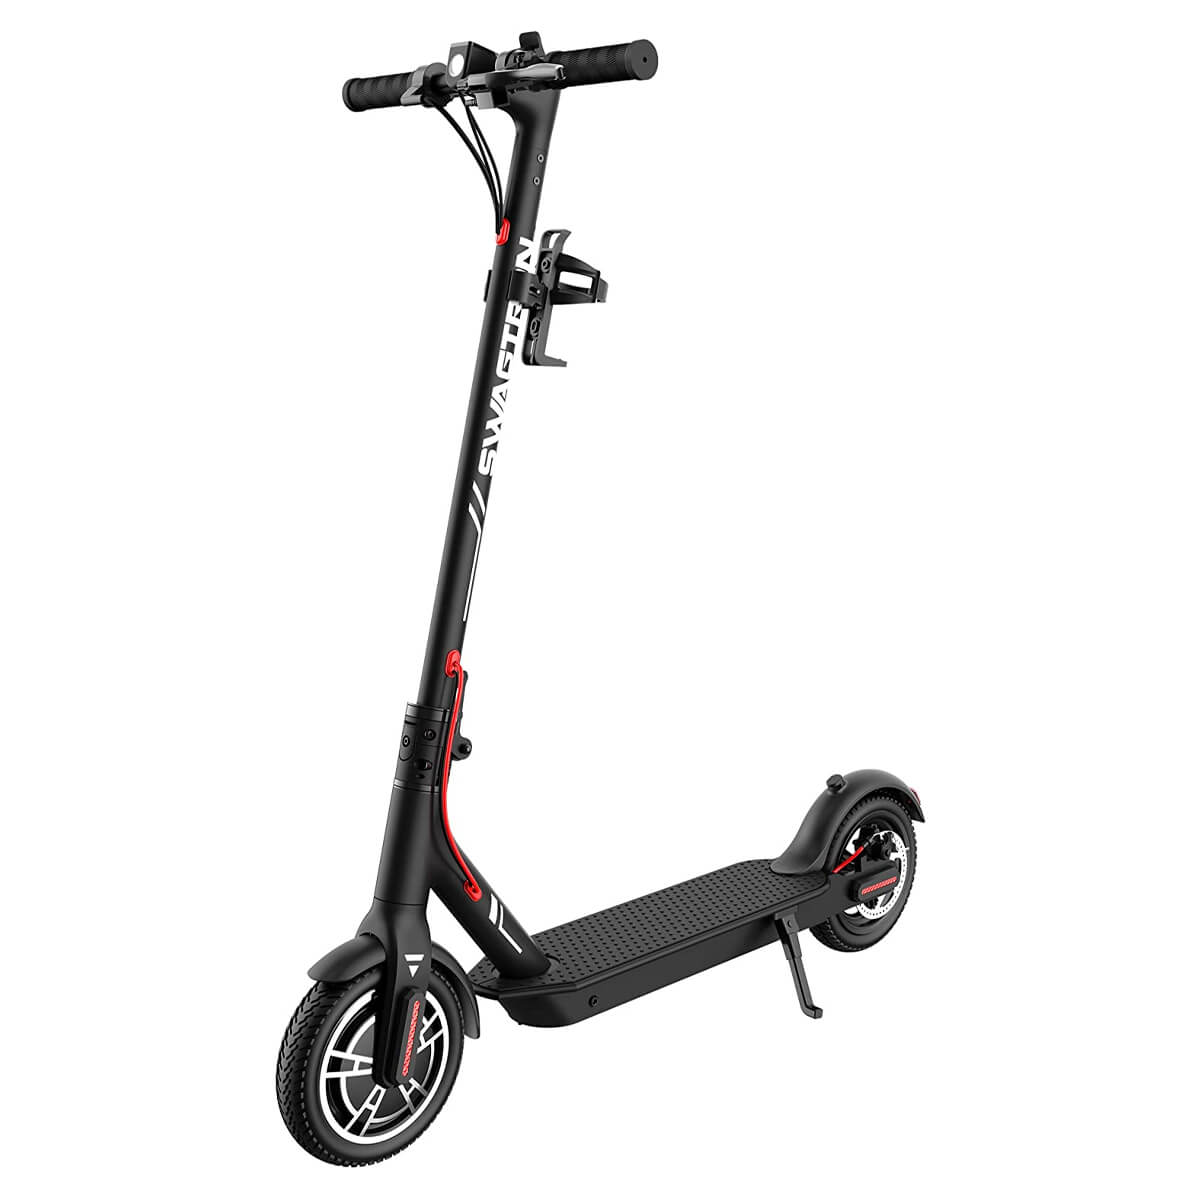 Swagger 5 High-Speed Electric Scooter